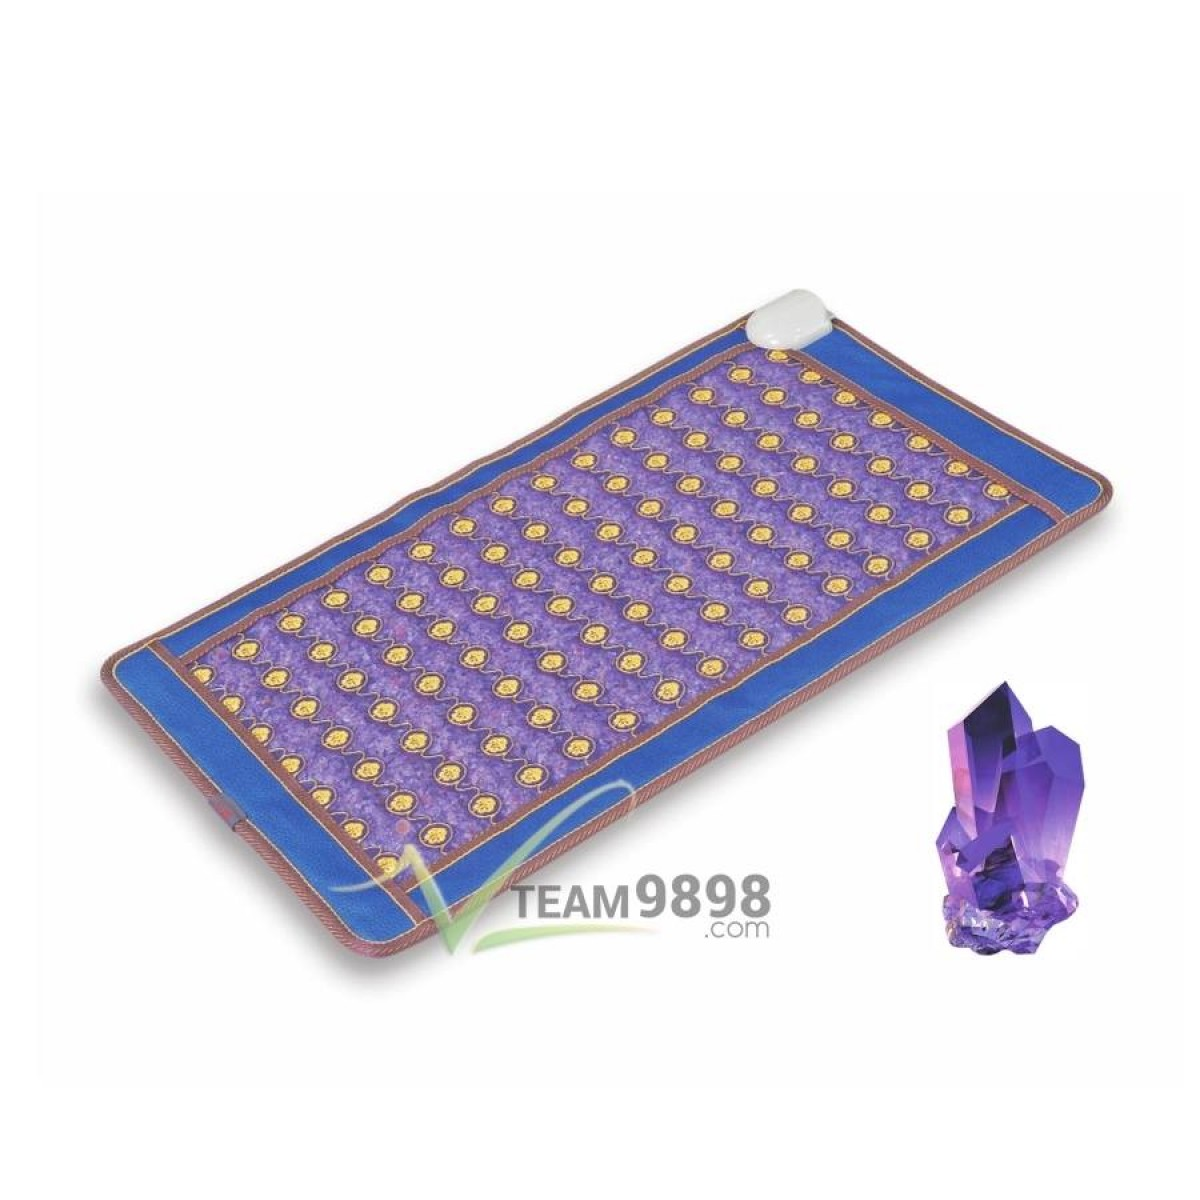 amethyst pro small in pad pads lifematspro x mat layer lifemats heating with mats product infrared